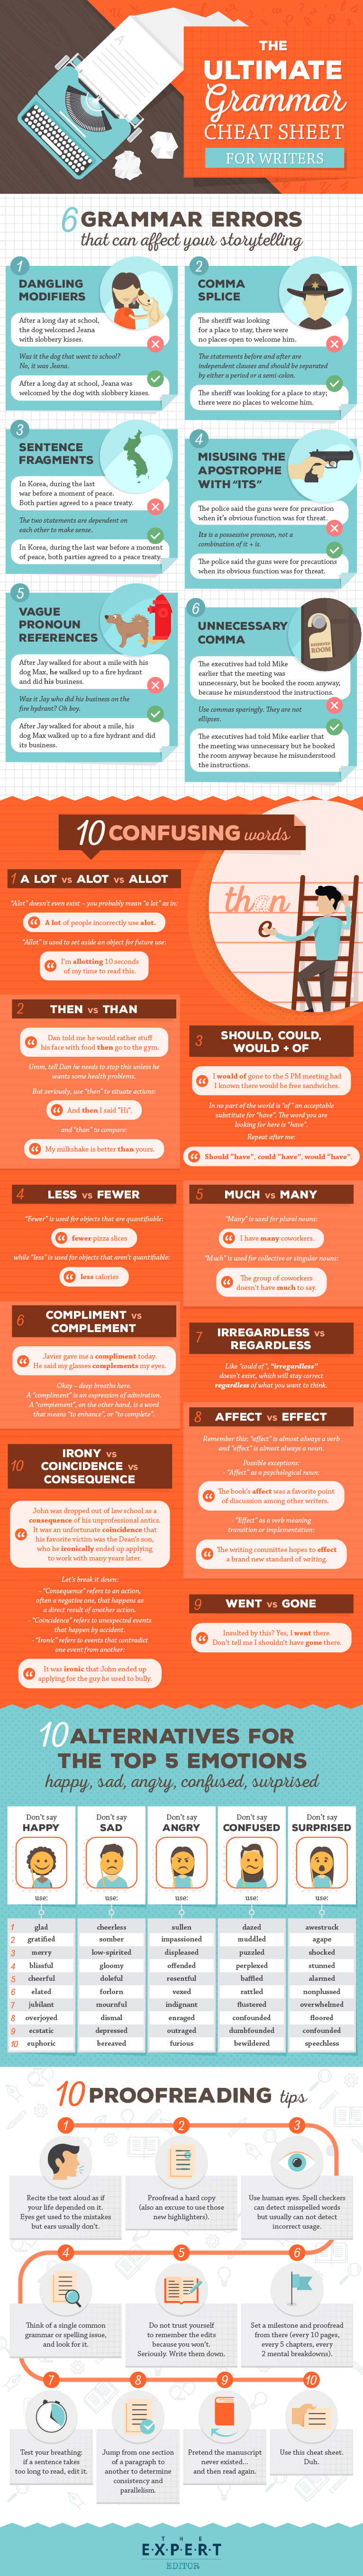 The Importance of Language: Tips on Correct Usage - Infographic